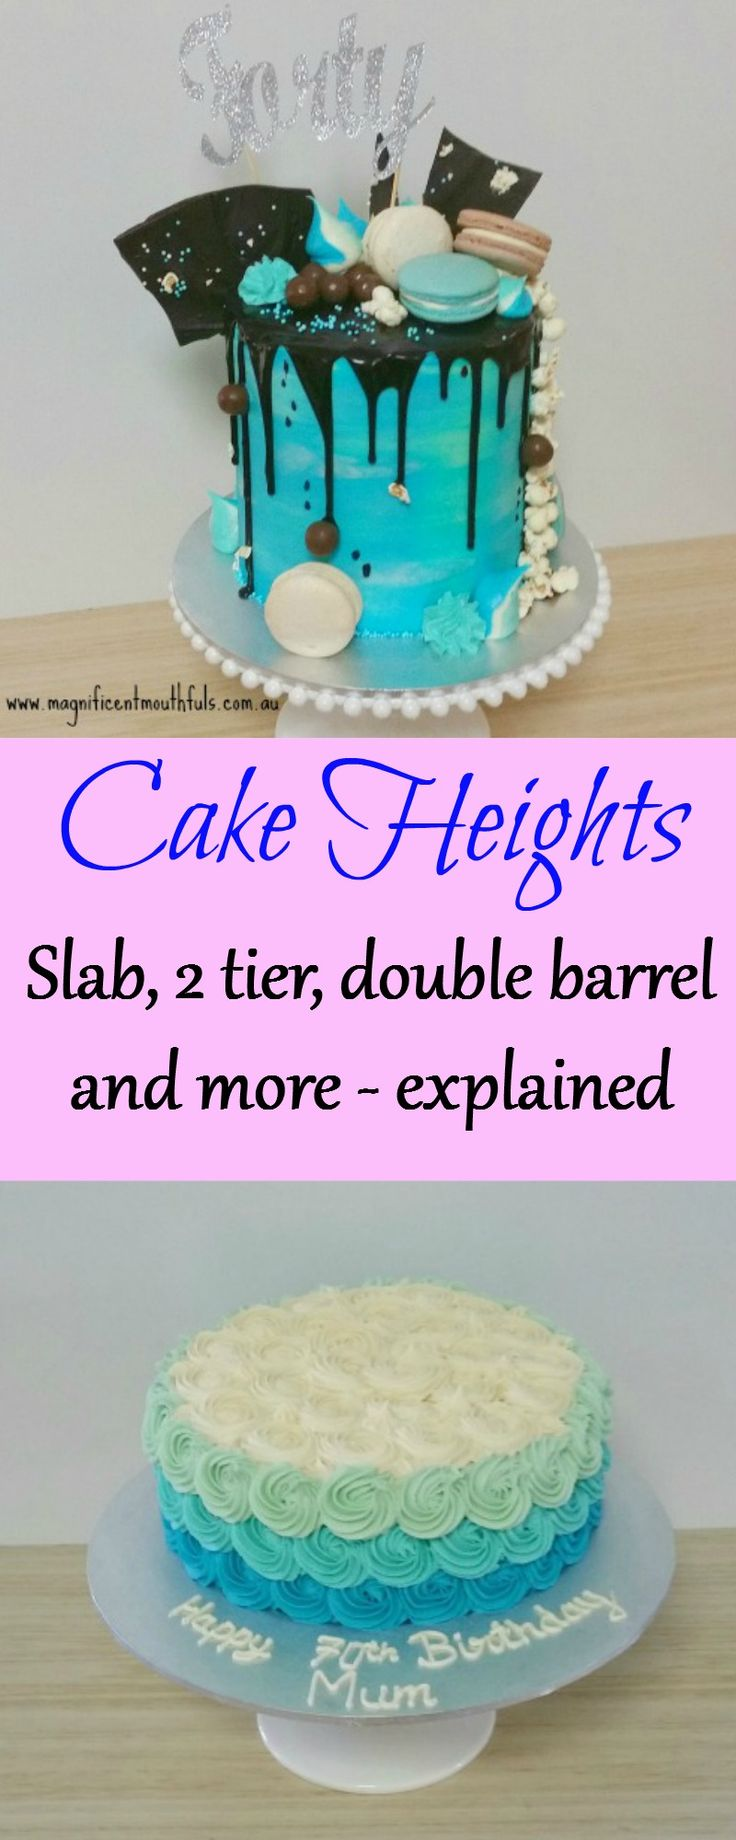 What's The Difference? Single, Extended, Double Barrel Cake...? | As well as the diameter of your cake, the height of your cake can determine approximately how many servings you will be able to slice. | http://magnificentmouthfuls.com.au/2017/07/07/different-cake-heights/